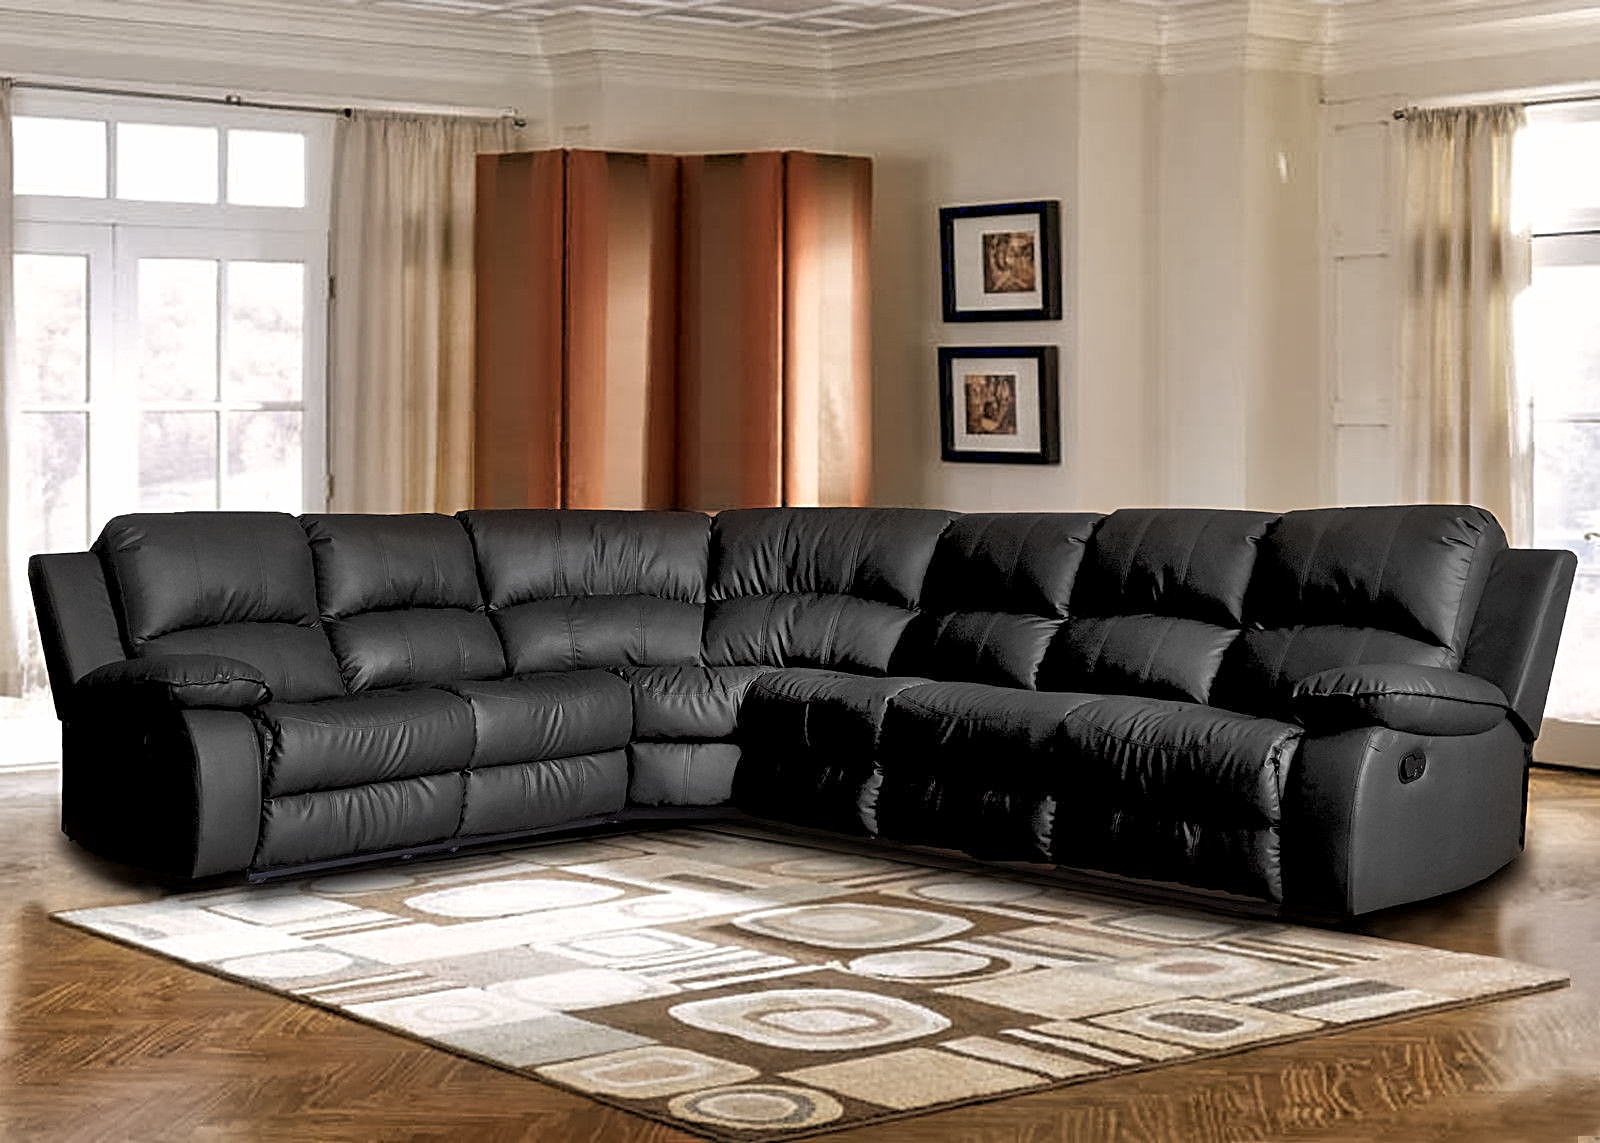 ON SALE ! SECTIONAL BLACK BONDED LEATHER SOFA SET $1195.00